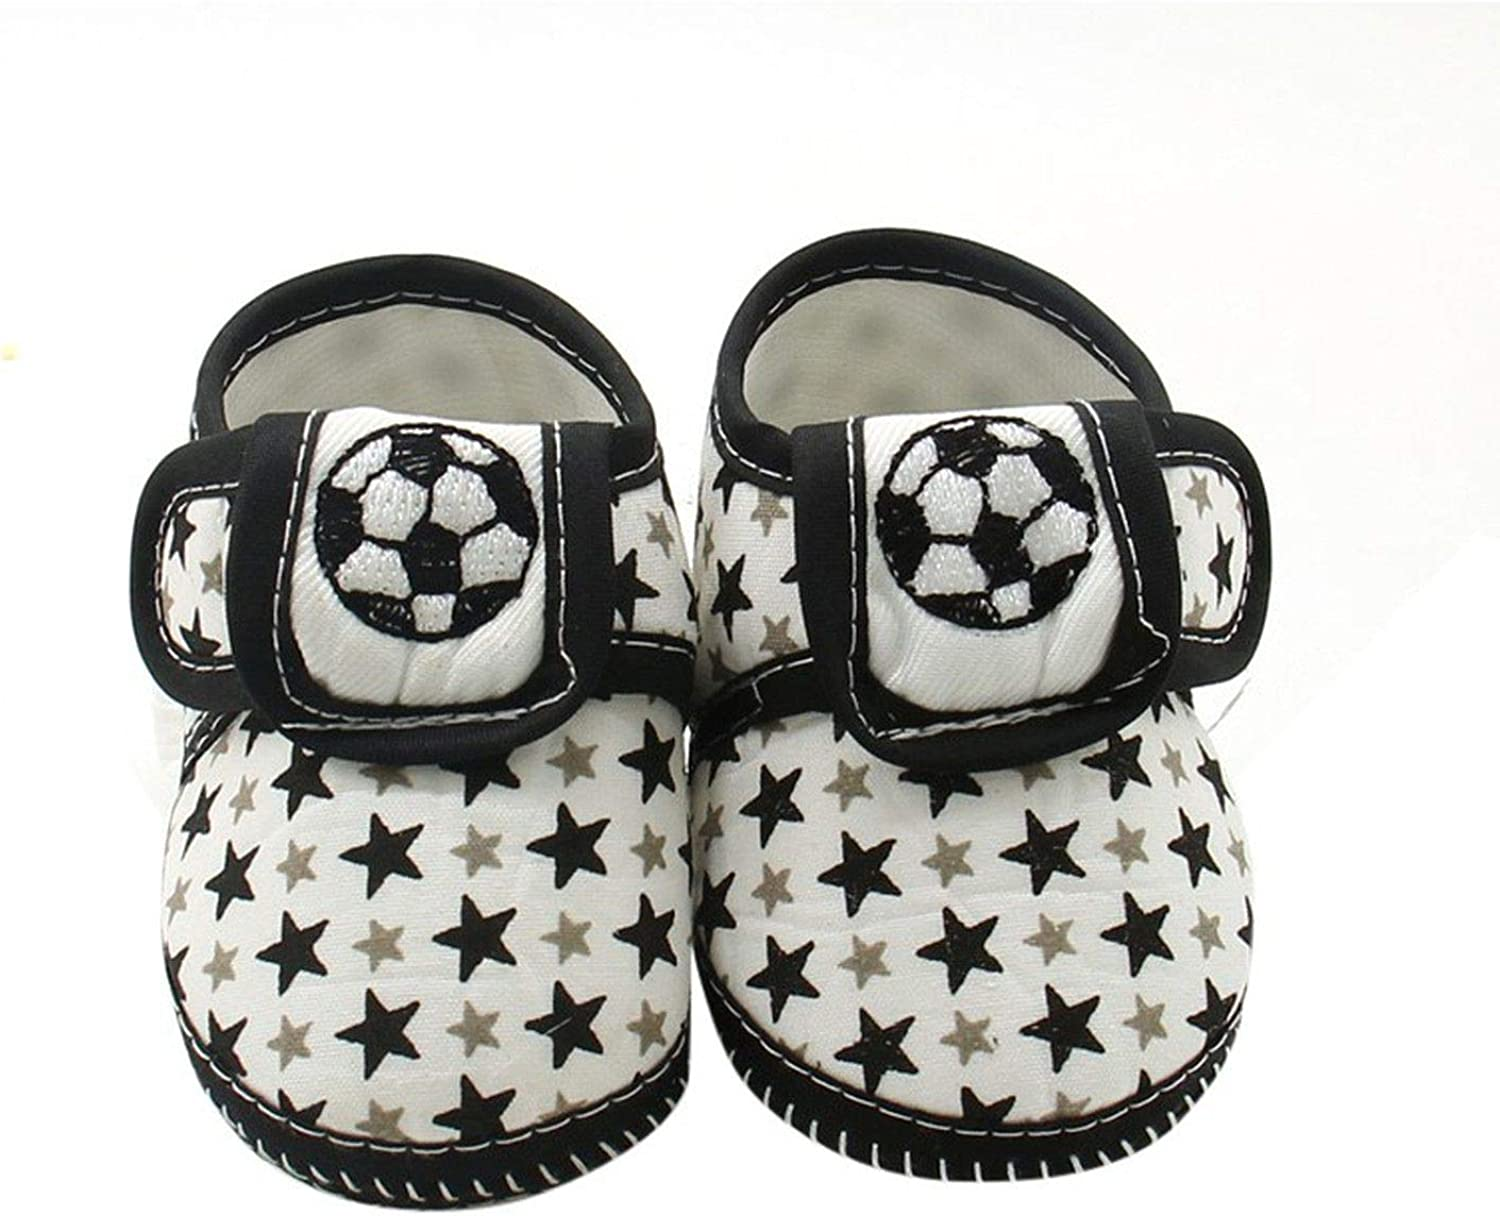 Soft Sole Baby Shoes Newborn Girls Boys Cute Star Cotton First Walkers Toddler Moccasins Black Red Blue